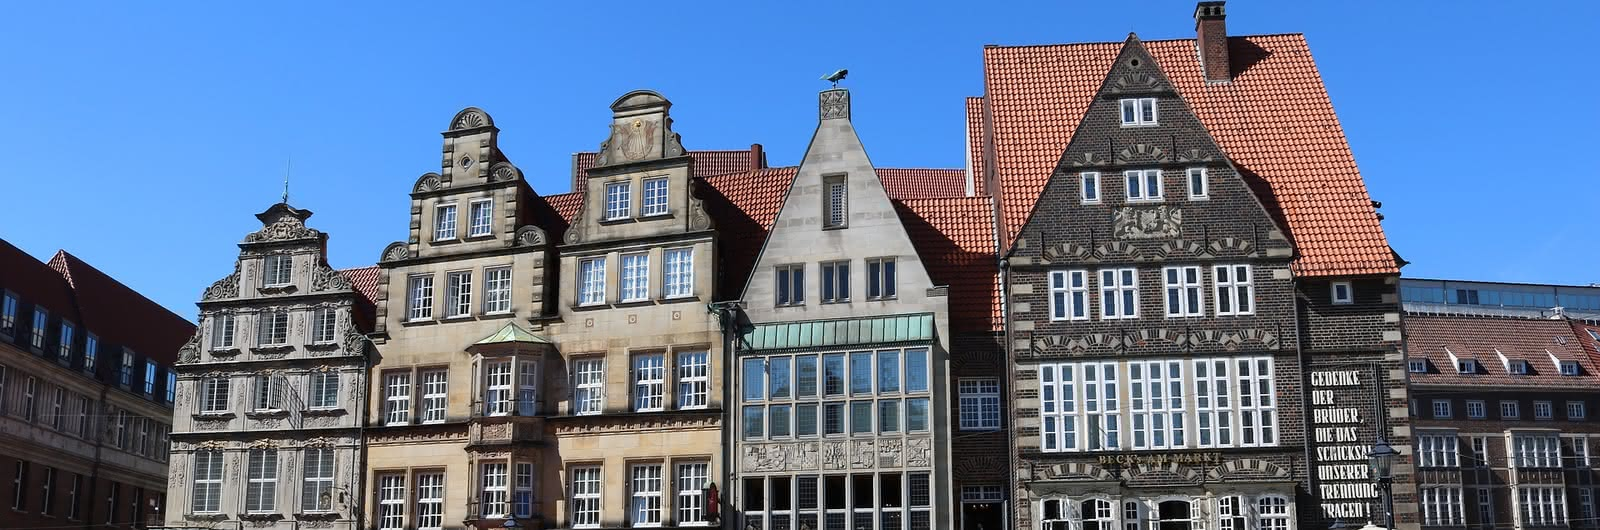 bremen city header